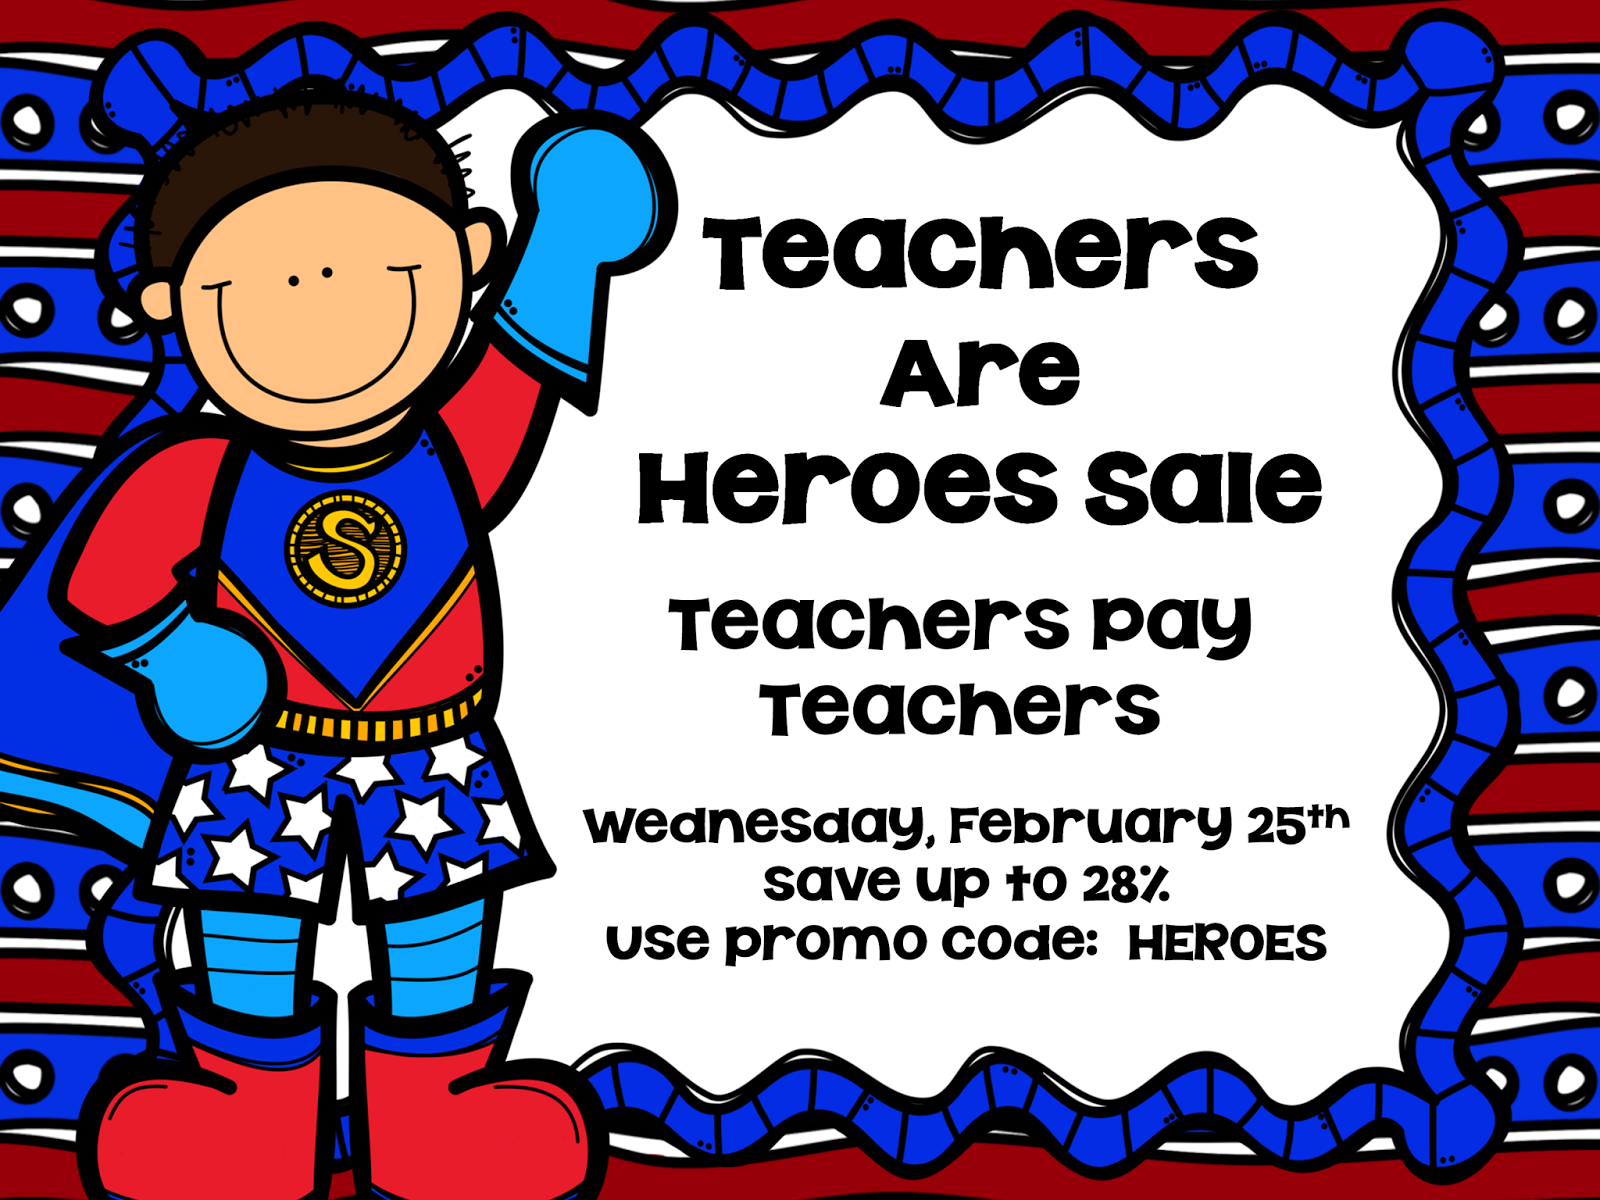 https://www.teacherspayteachers.com/